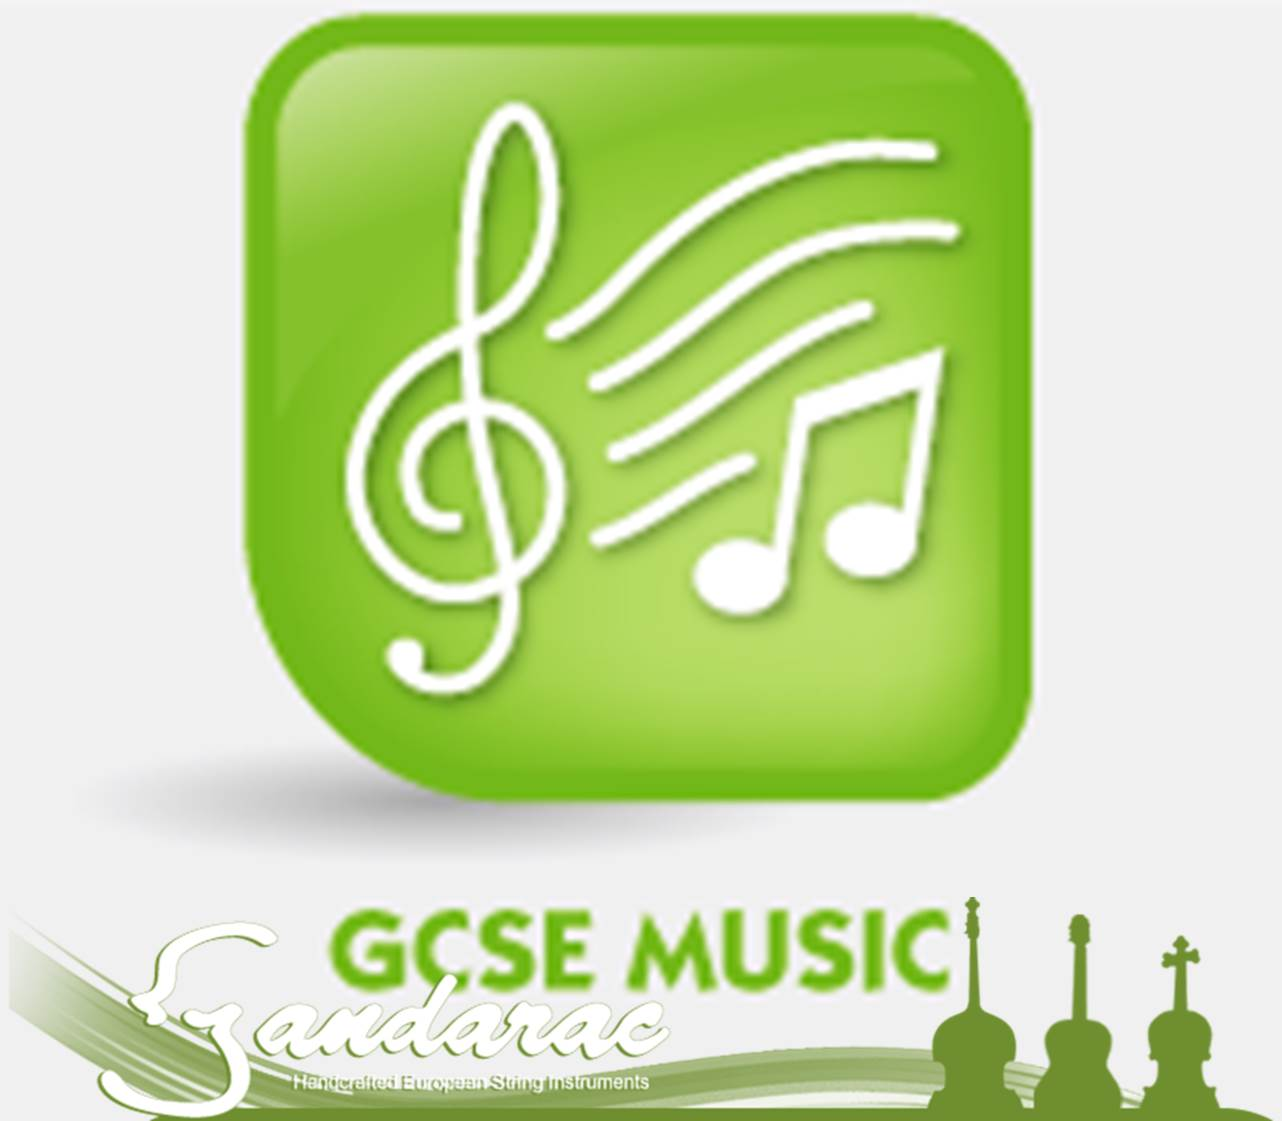 ocr gcse music coursework (gcse/b/fc) the cashin code is required to gain the full award/grade (a-e or 9-1) units: these can be exams, practicals, coursework or assessments unit marks added together make the overall grade.